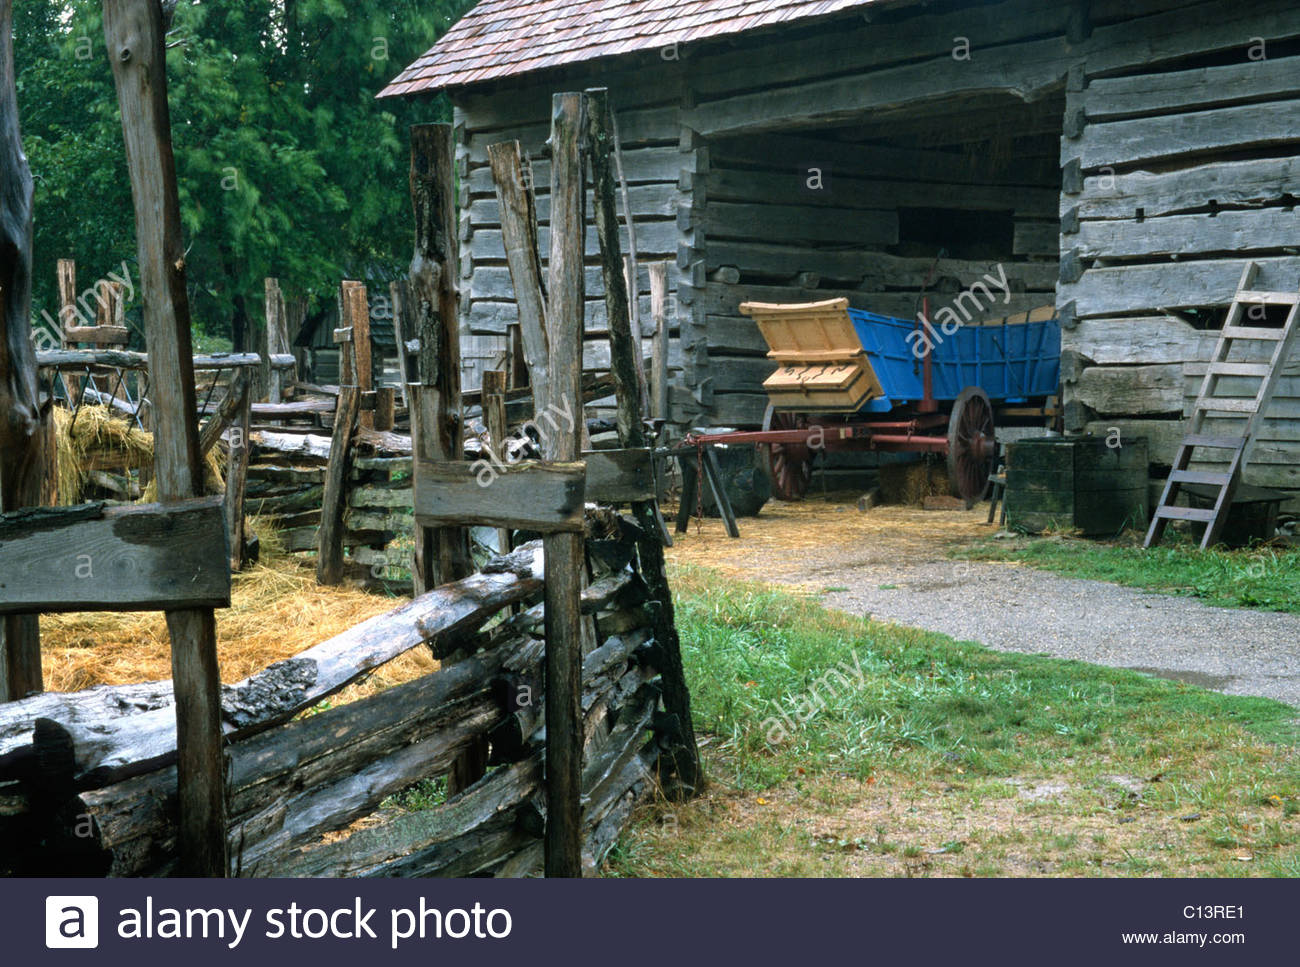 abe lincoln cabin stock photos abe lincoln cabin stock images alamy